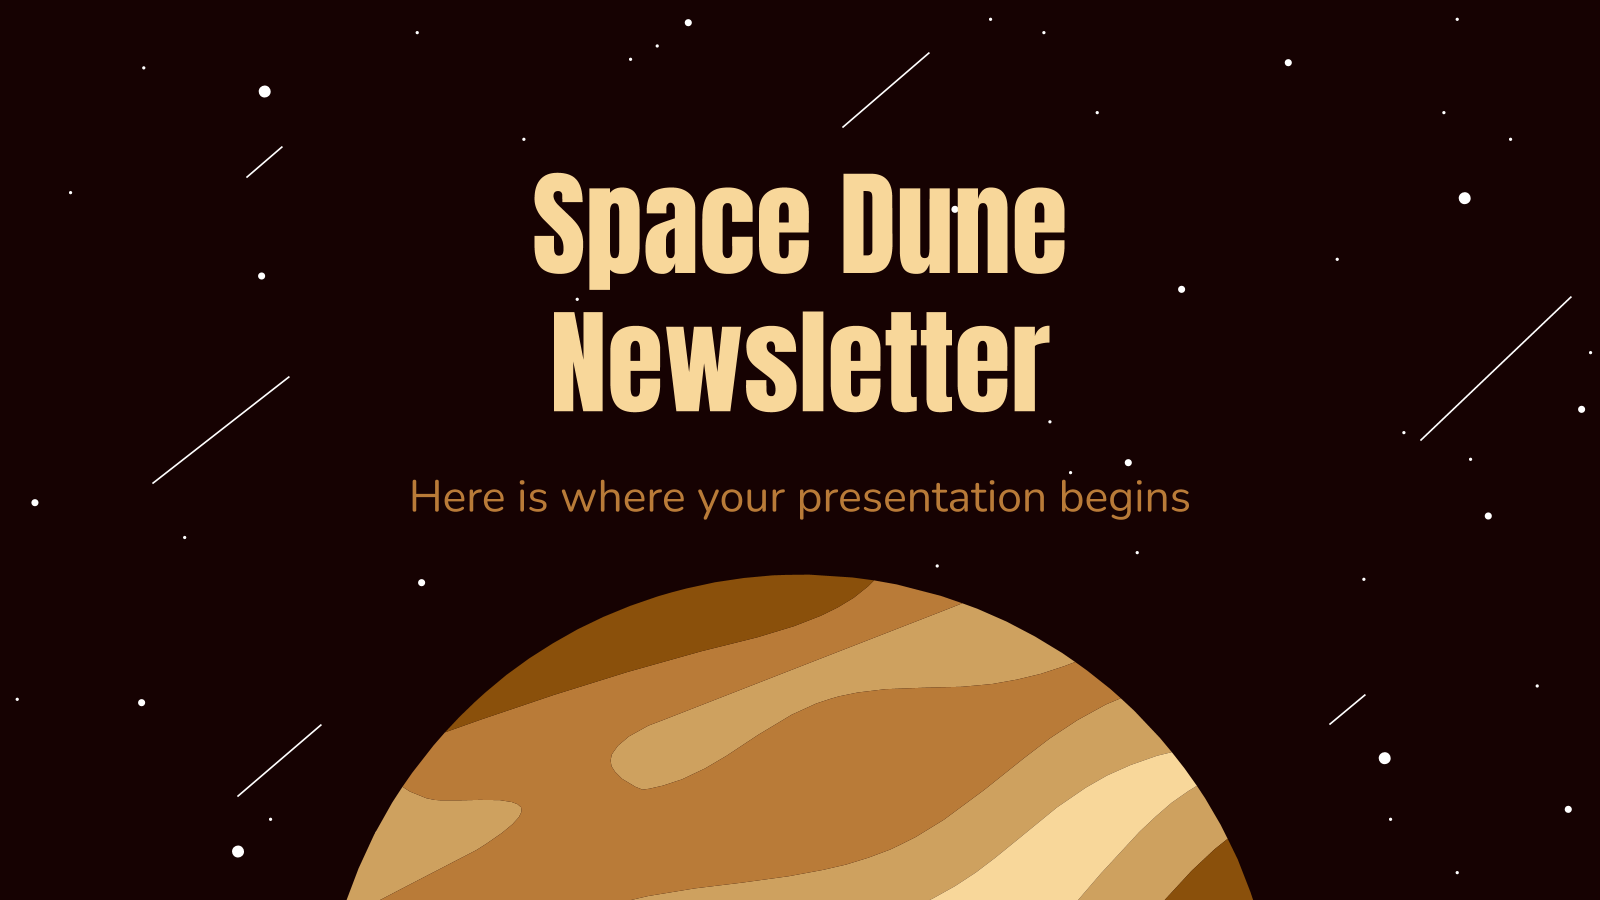 Space Dune Newsletter presentation template